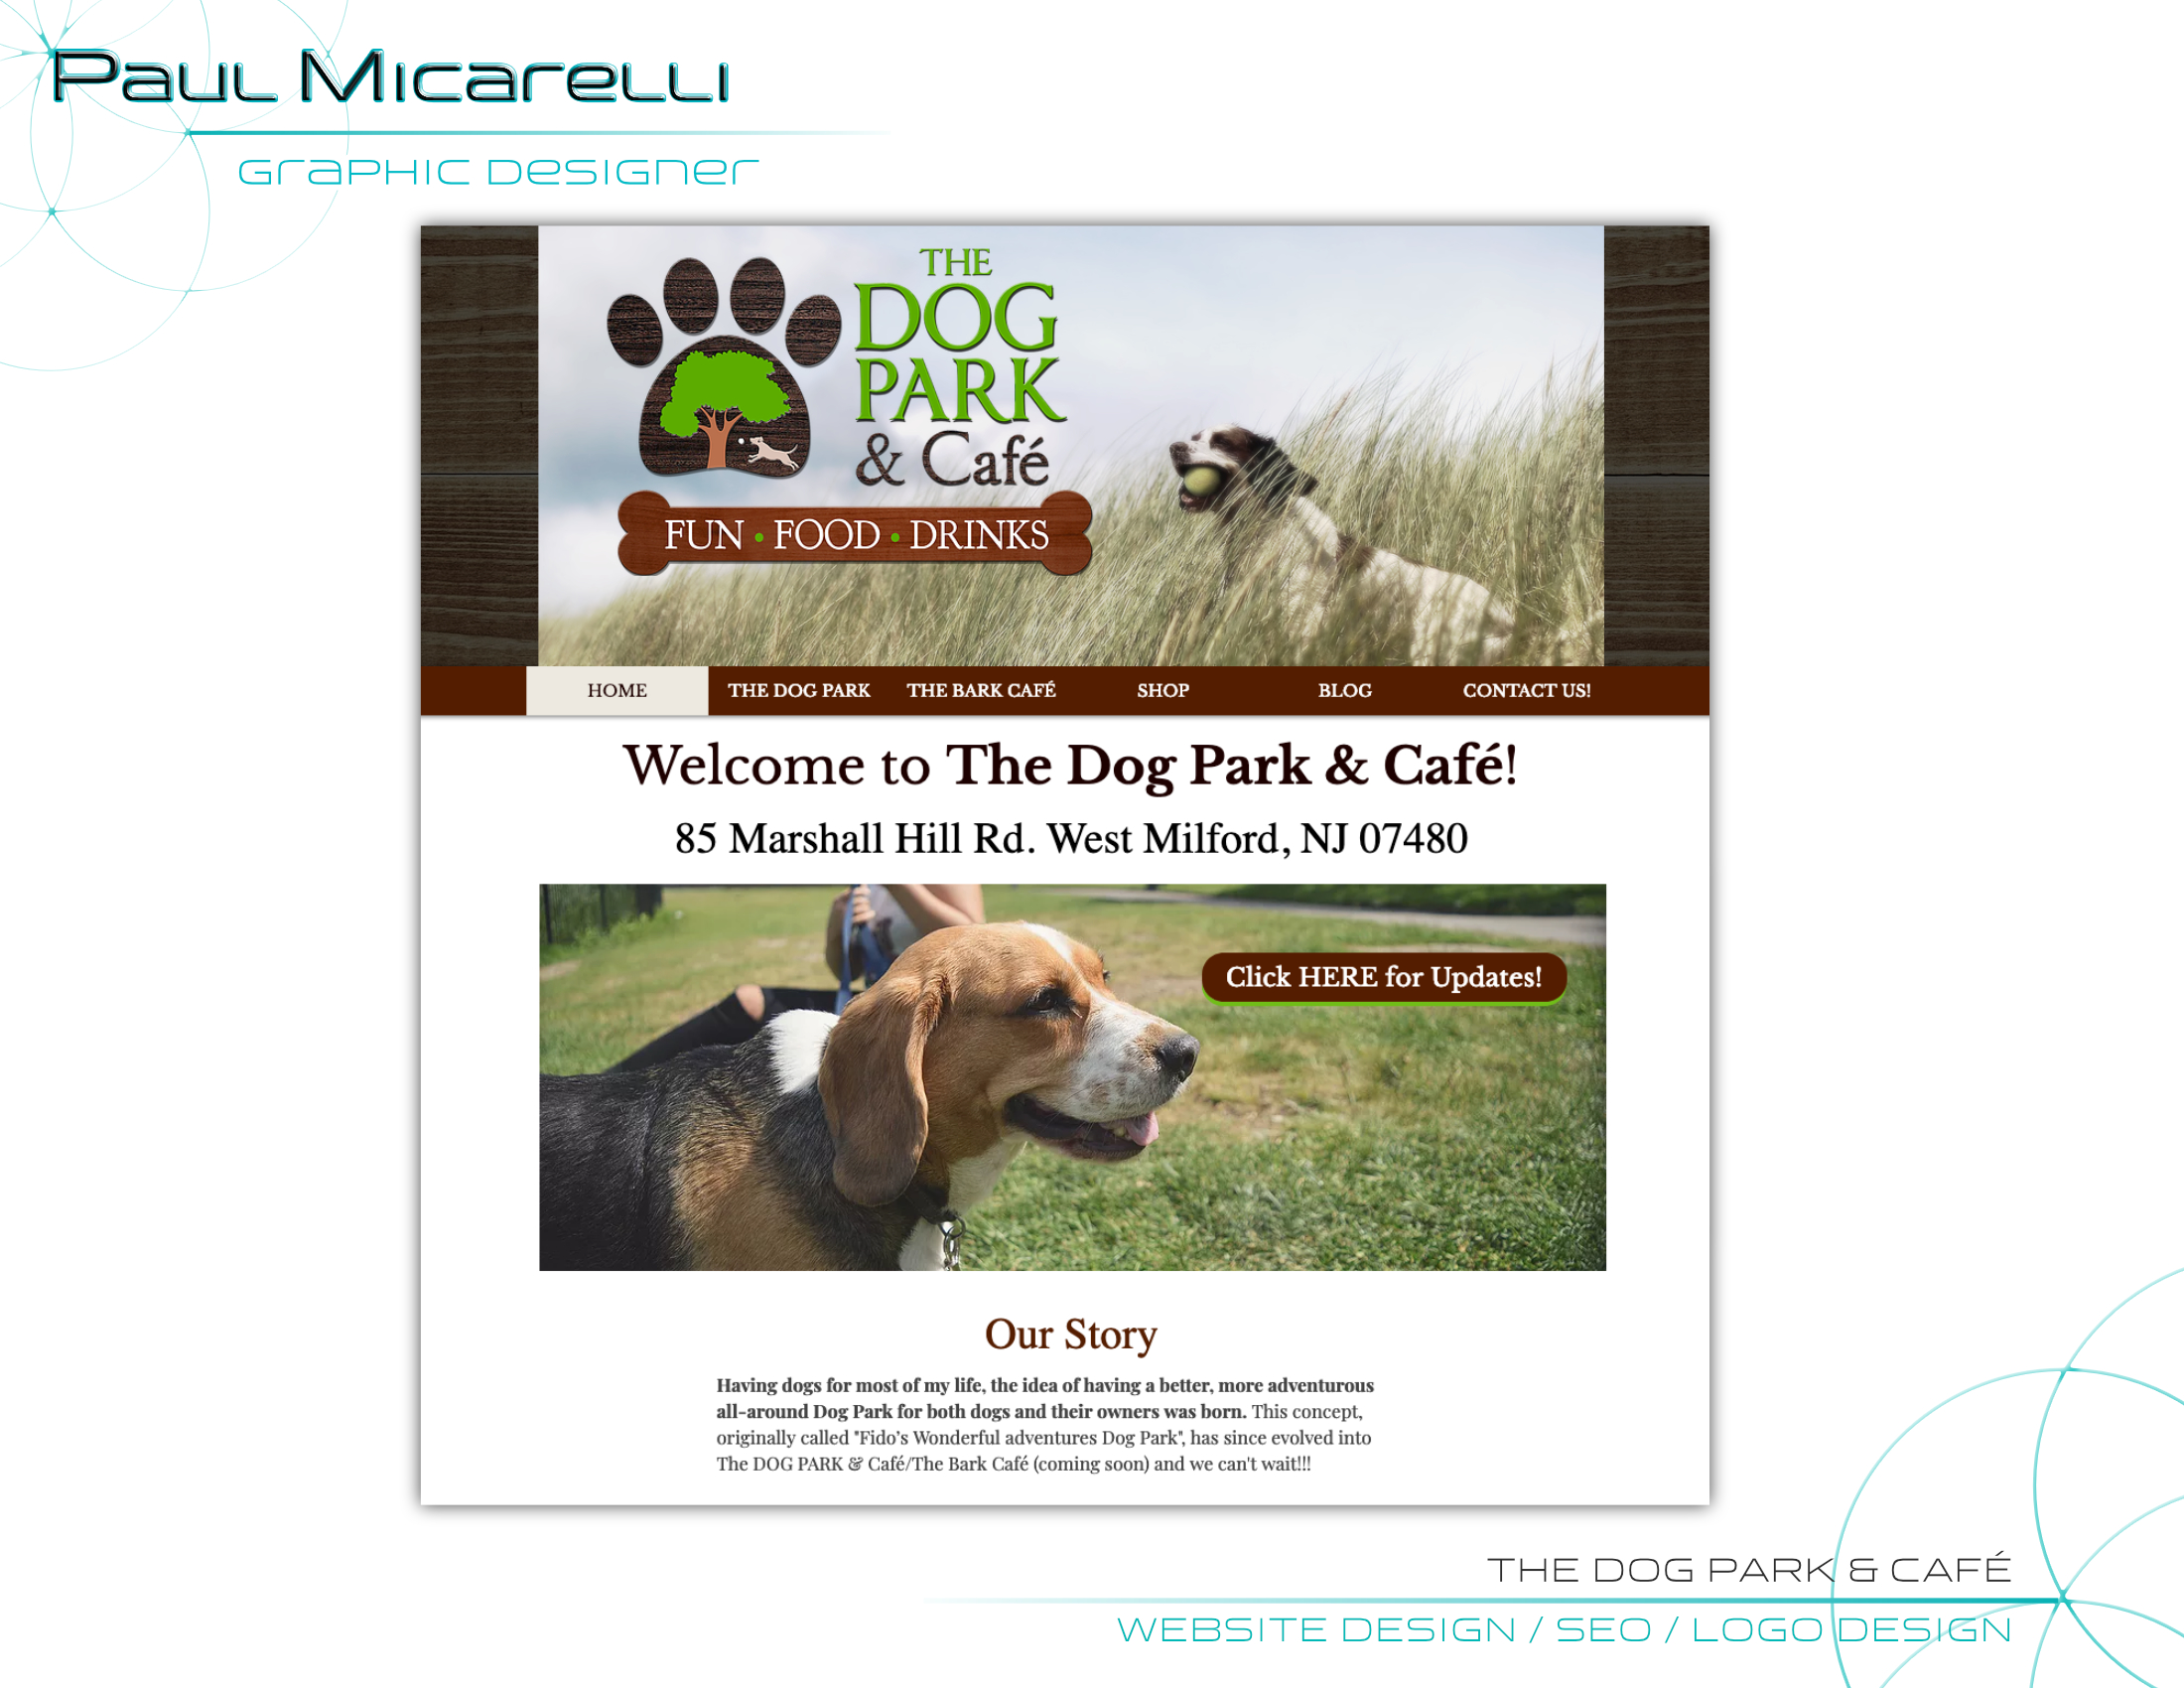 Paul-Micarelli-Dog Park Cafe-Website